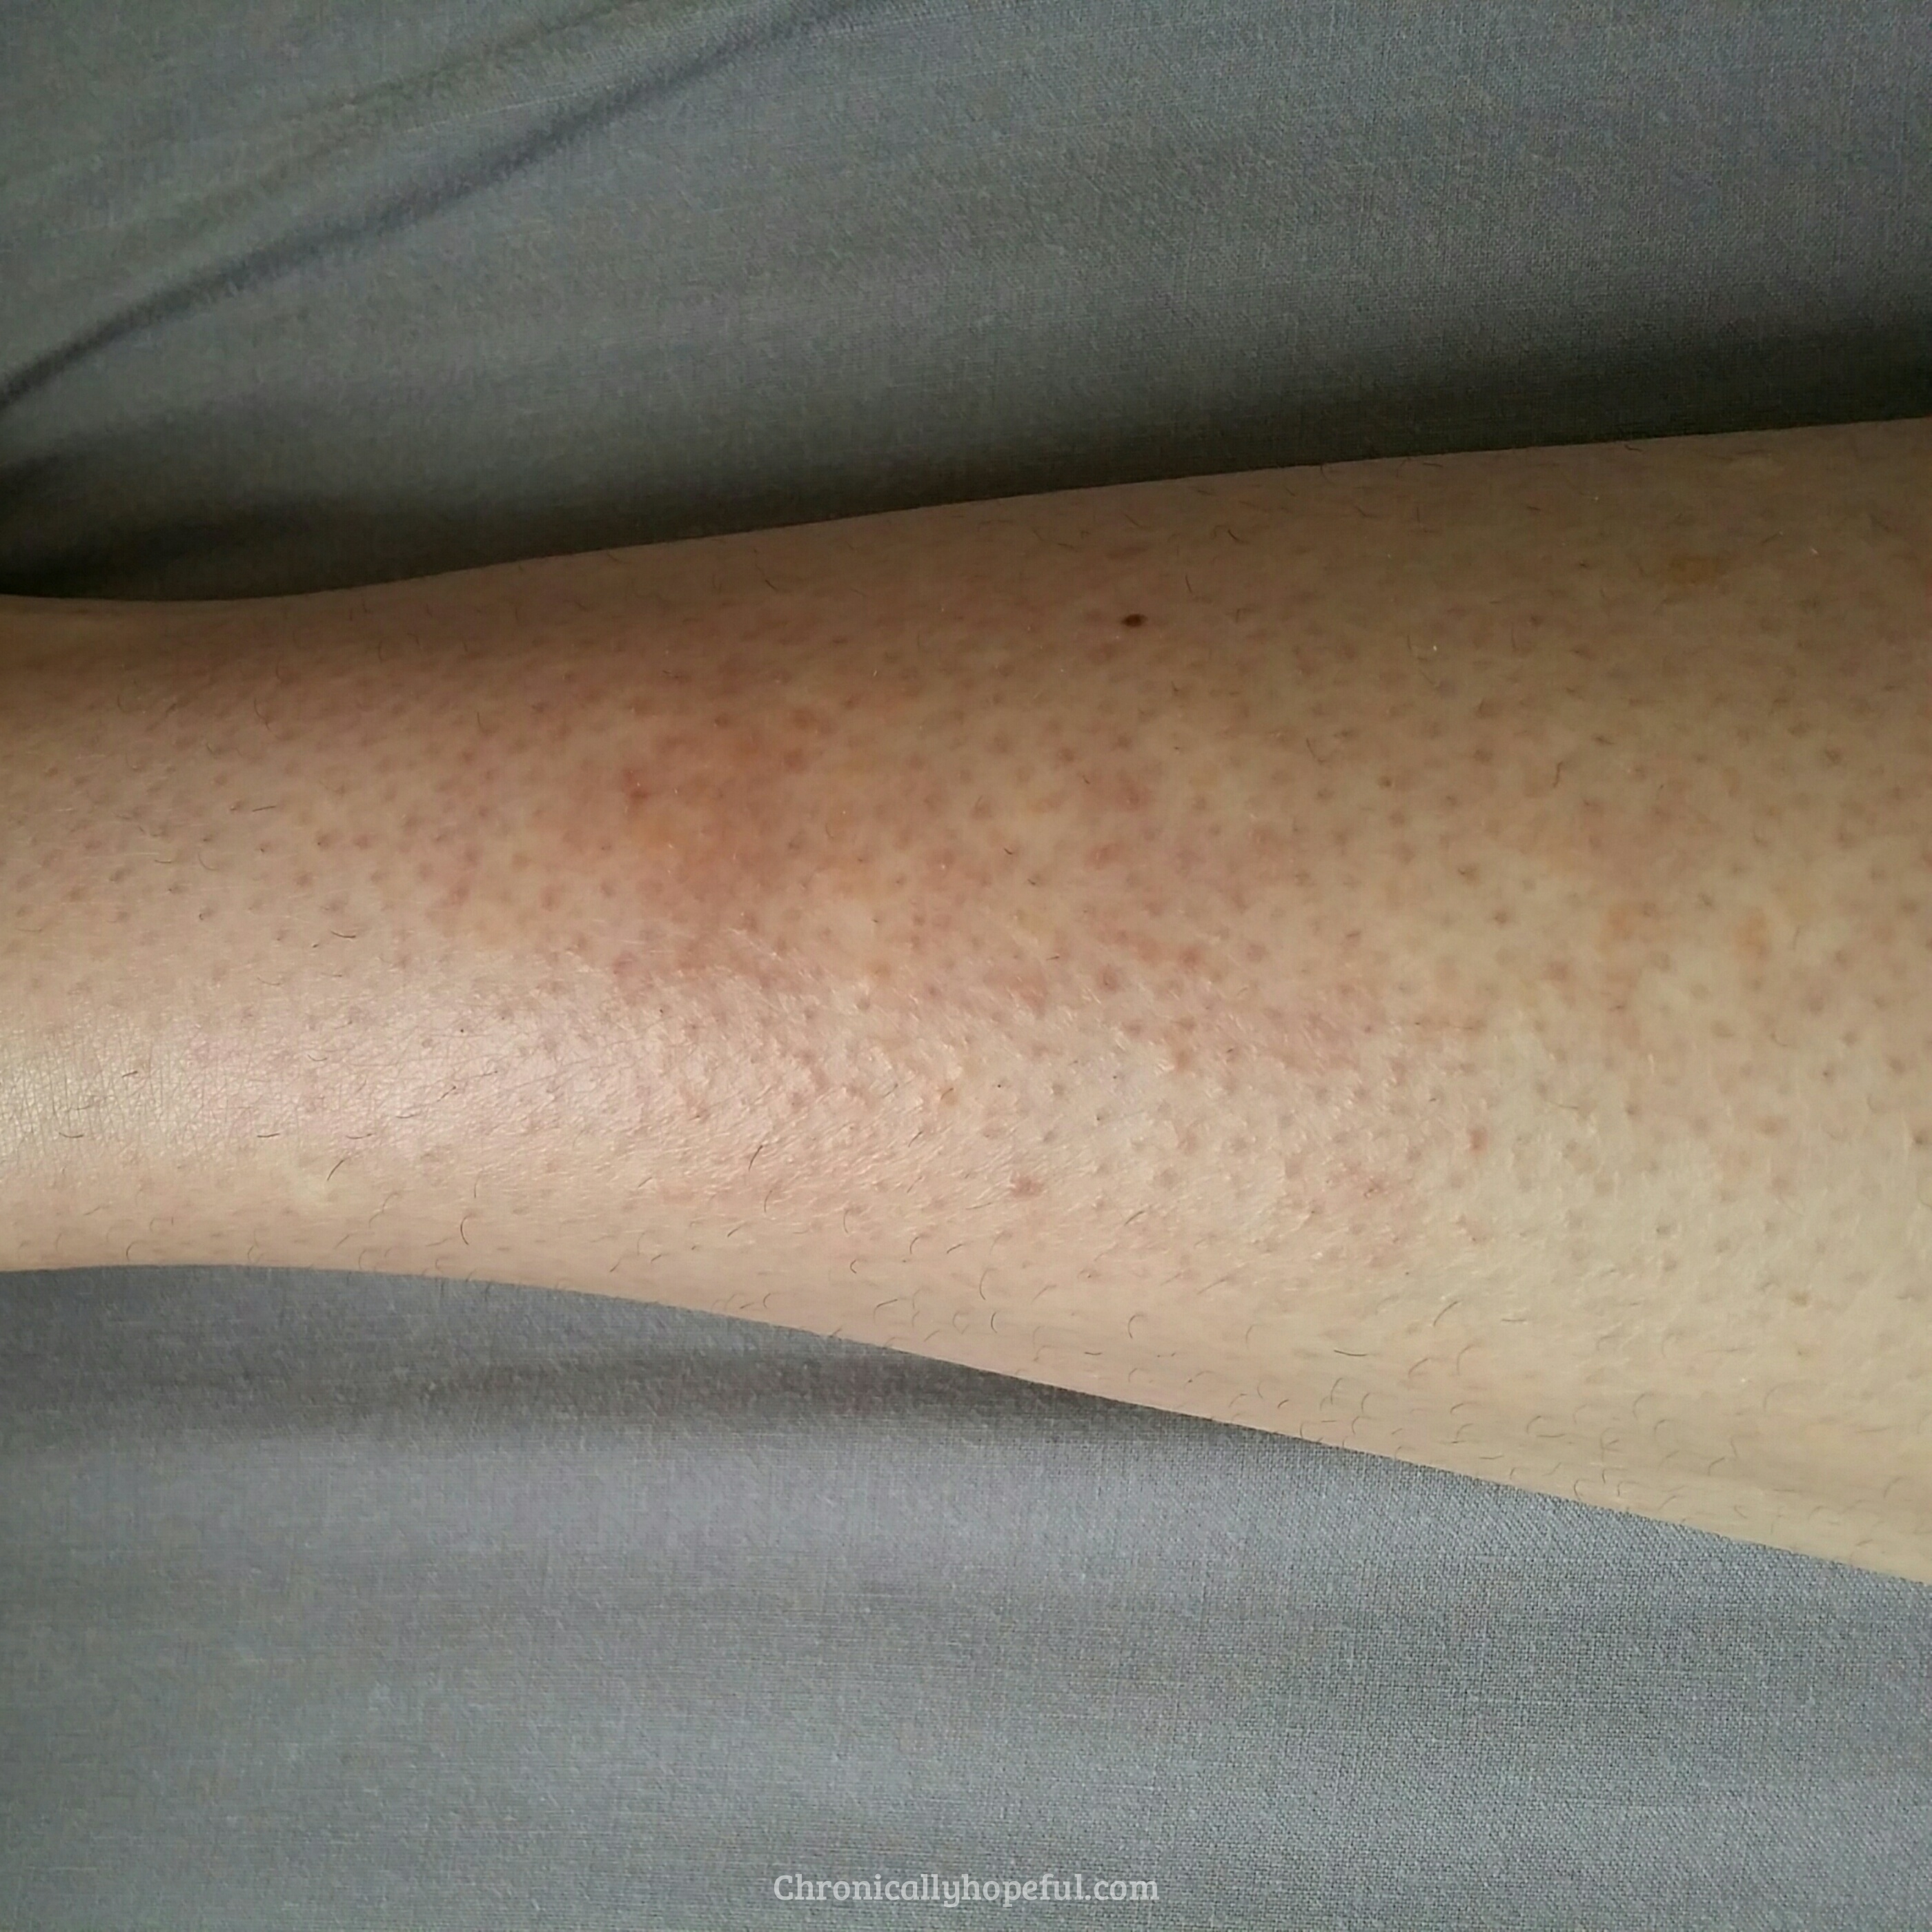 Histamine Intolerance How I M Reducing My Rashes And Hives